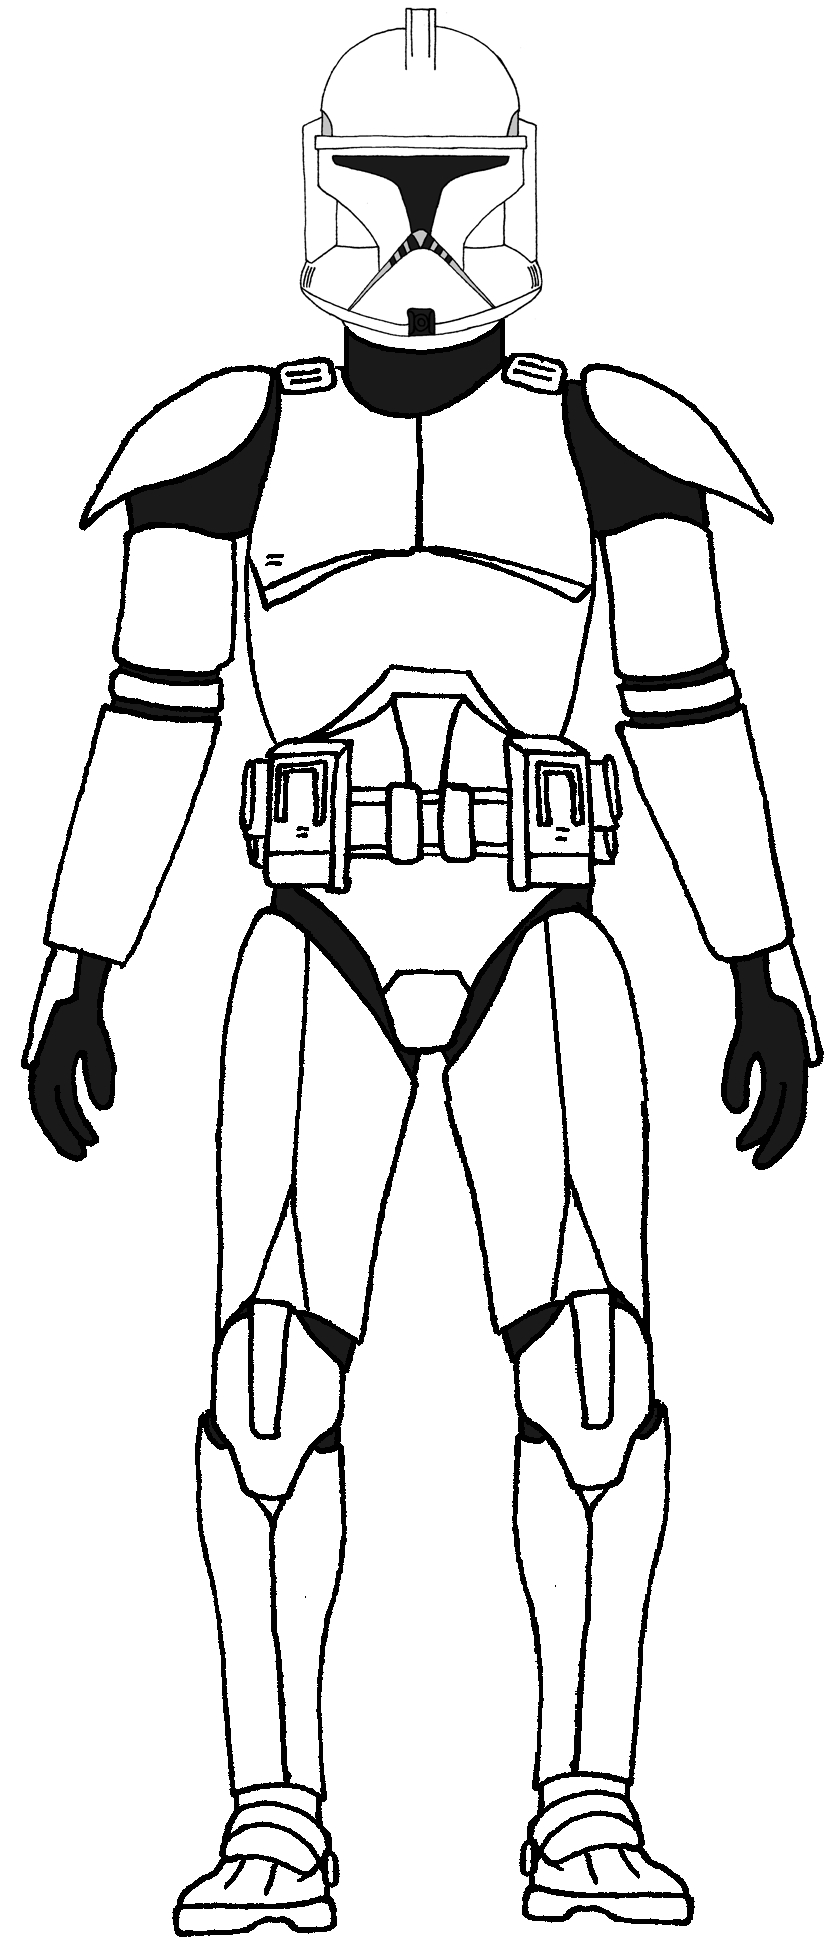 Clone Trooper Coloring Pages - 14 Clone Trooper Coloring Pages